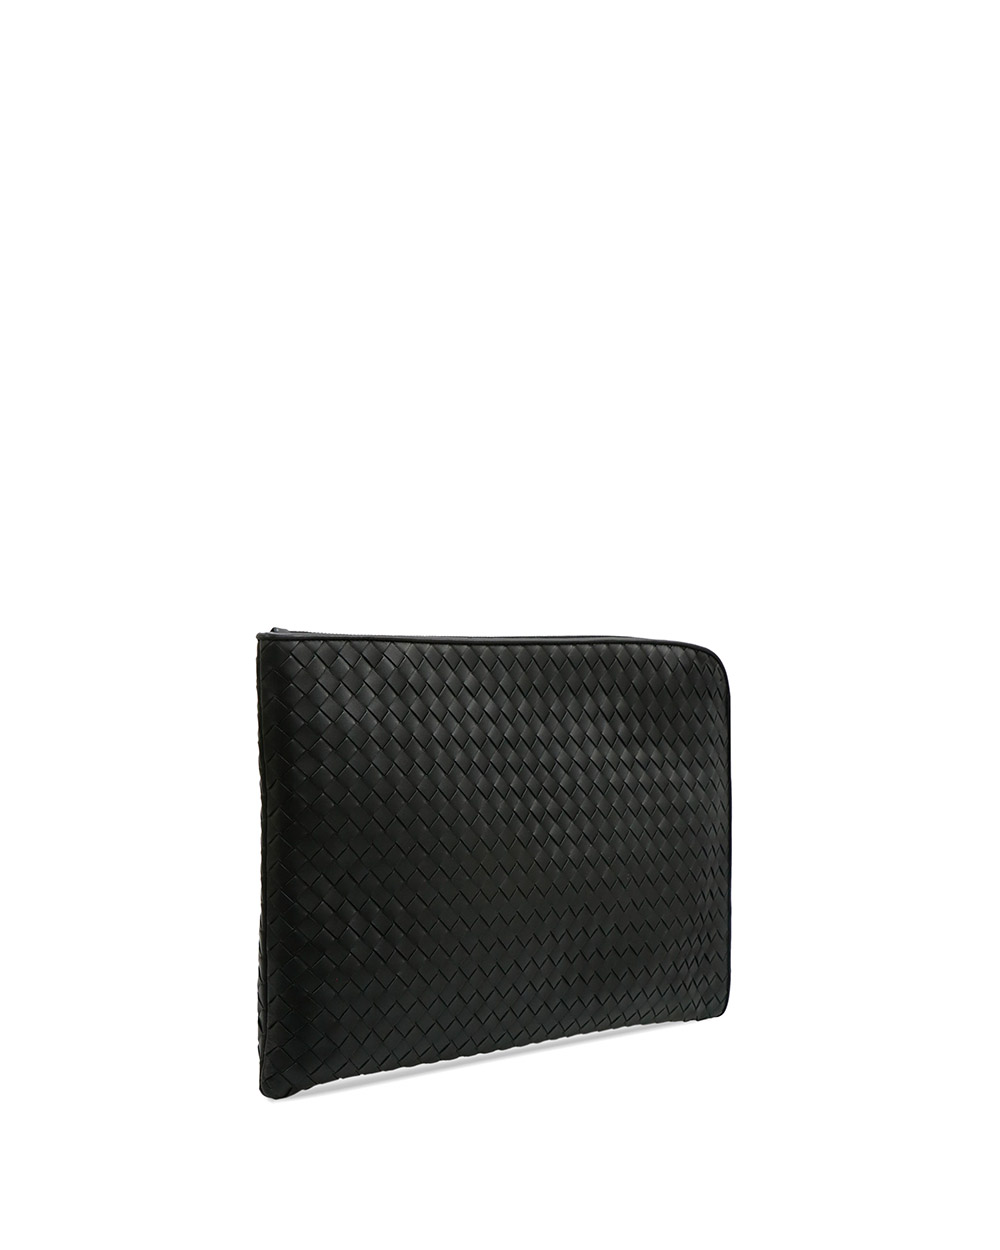 Woven Leather Clutch 1